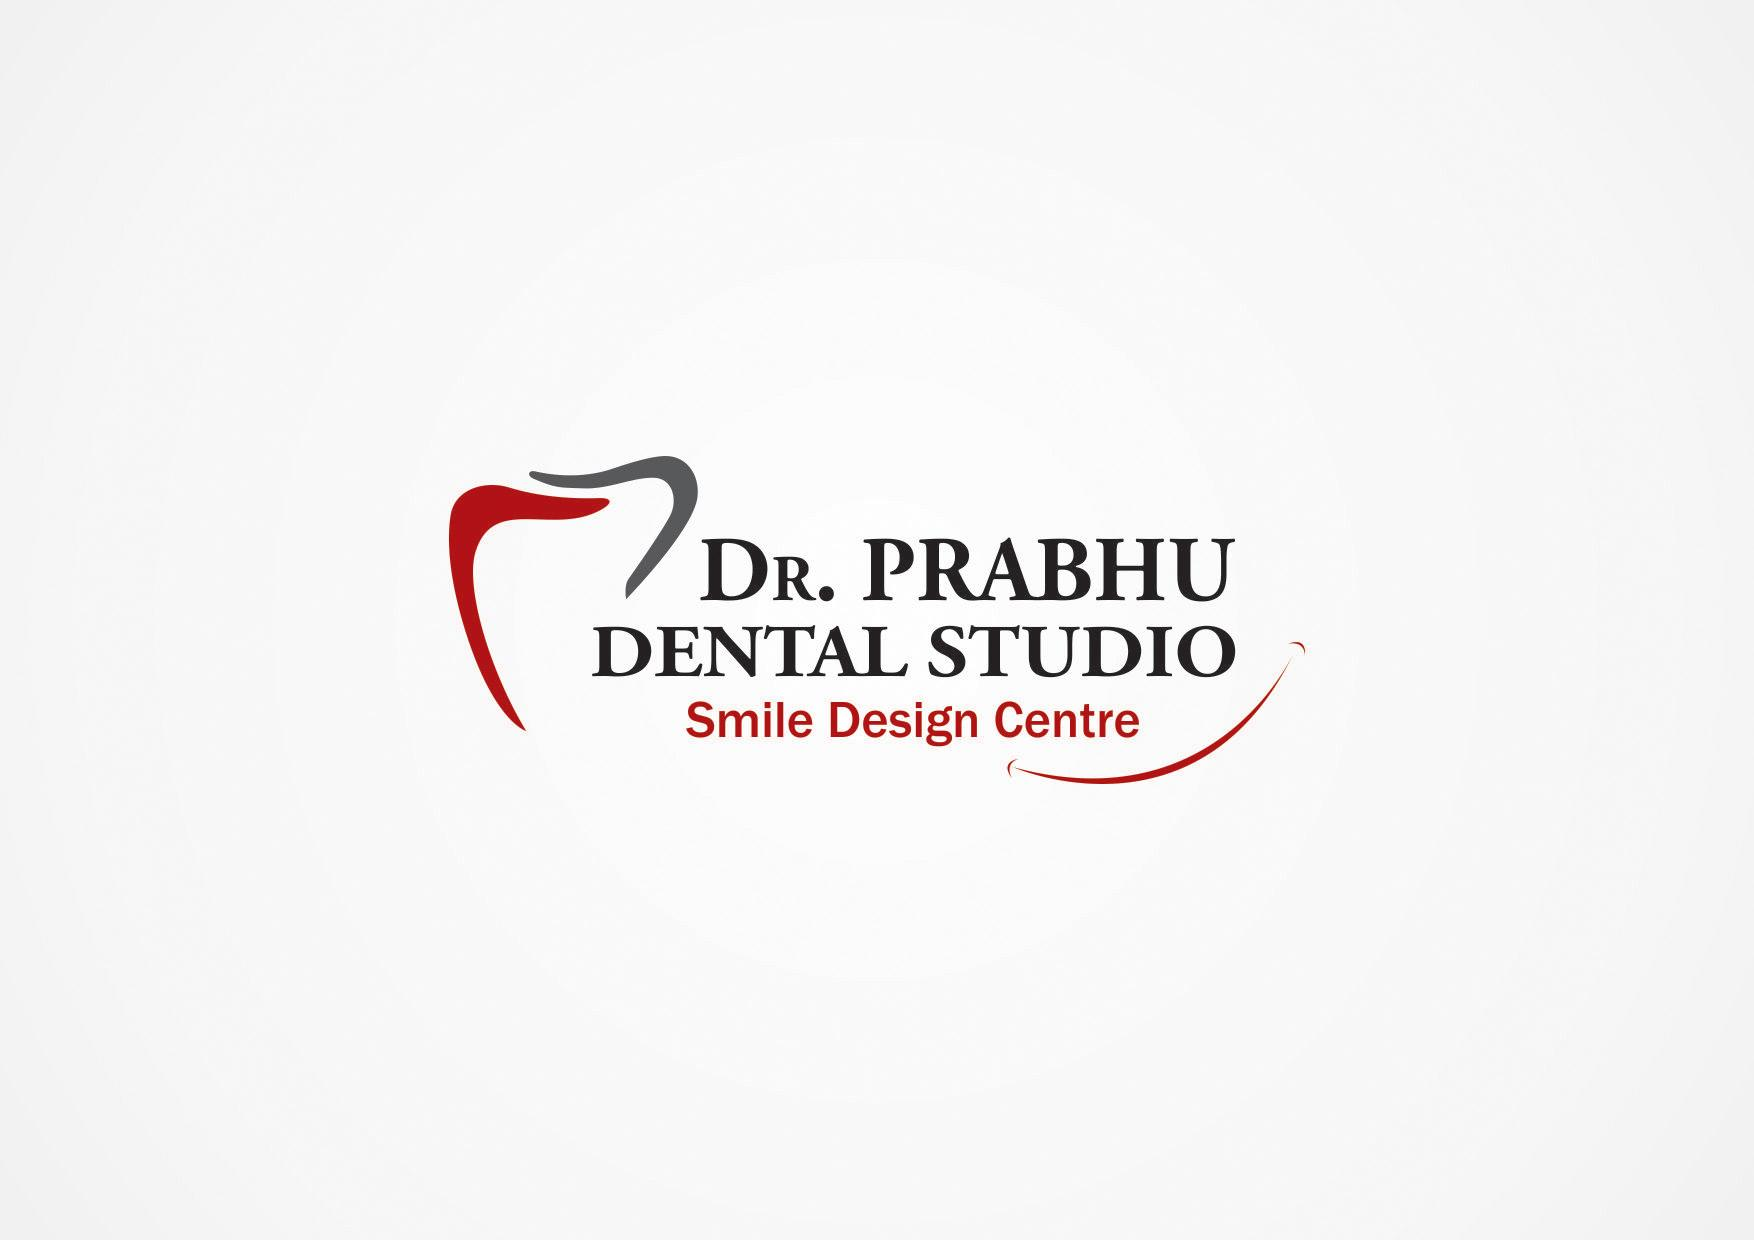 Dr. Prabhu Dental Studio